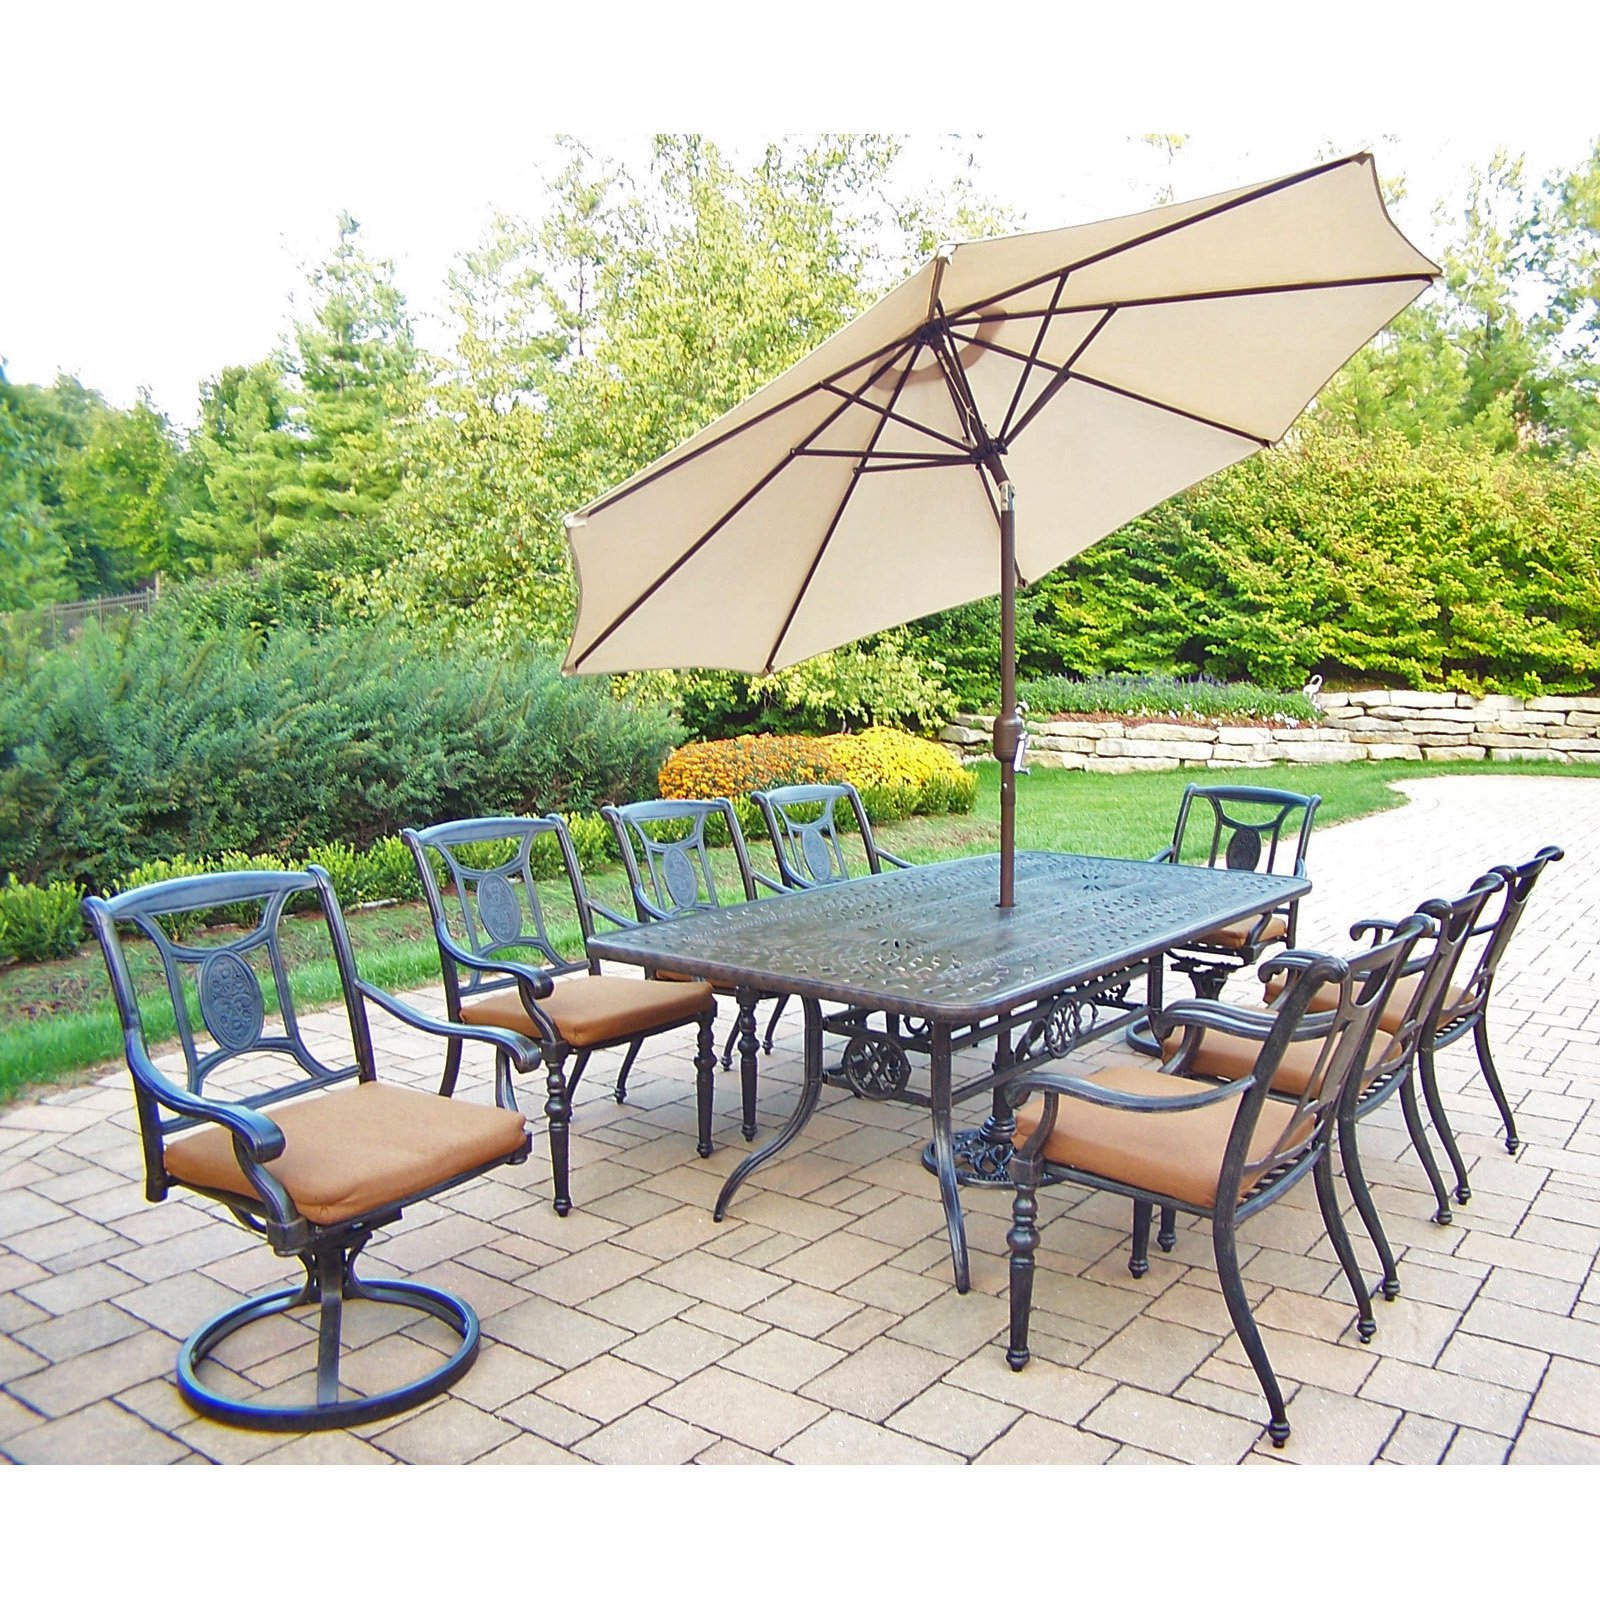 Oakland Living Victoria Aluminum 9 Piece 84 x 42 in. Rectangular Patio Dining Set